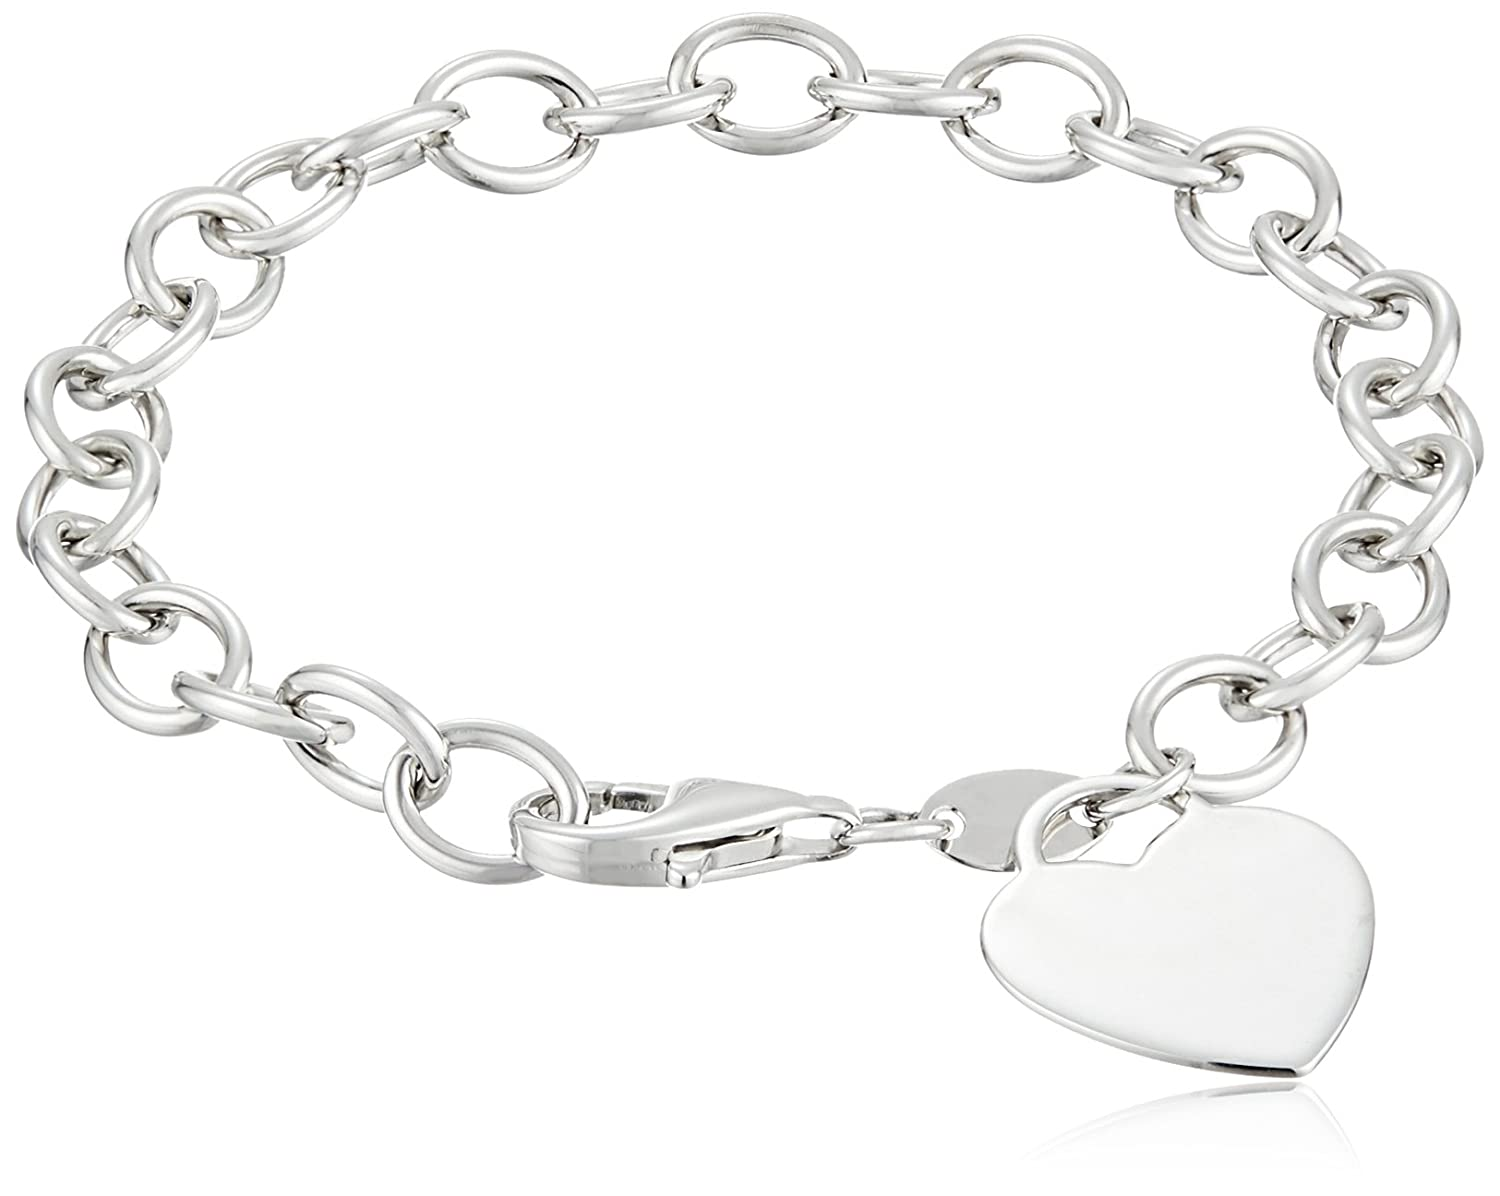 Elements Silver Heart Charm Toggle Sterling Silver Bracelet Q0XI3Hmn0G